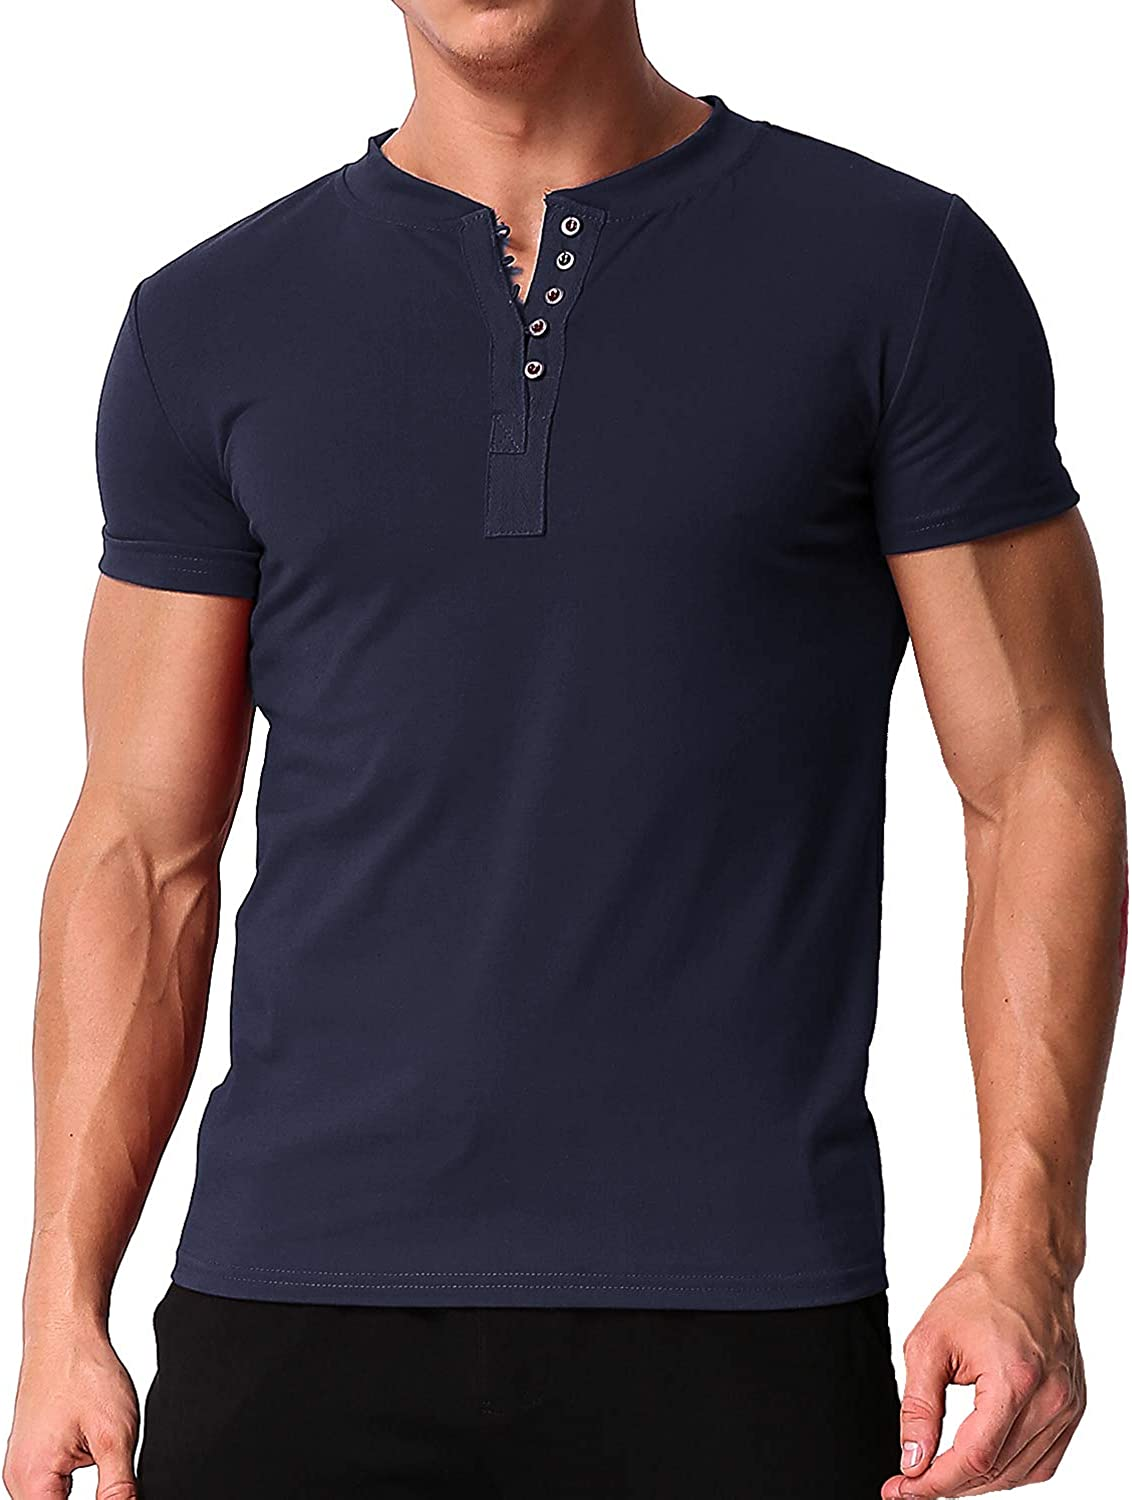 Mens Casual Solid Button T-Shirt Quick Dry Performance Muscle Fitness Henley Short Sleeve Crew/&V-Neck Sport Tee by Leegor